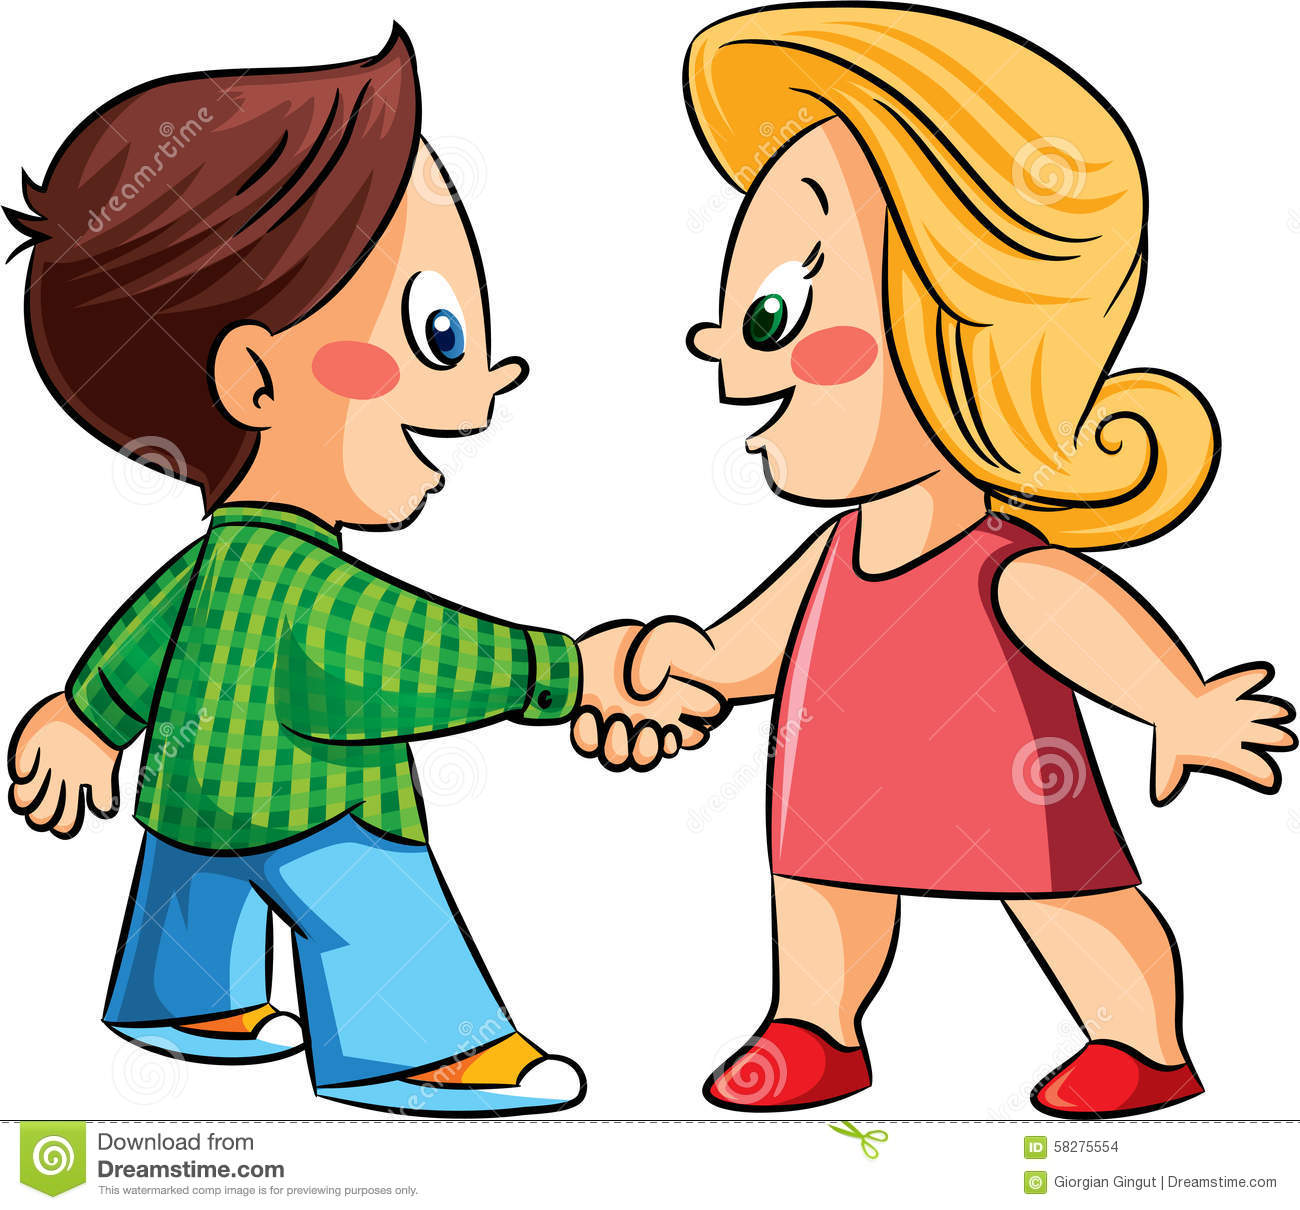 people shaking hands drawing at getdrawings com free for personal rh getdrawings com clipart shaking hands free clipart shaking hands free